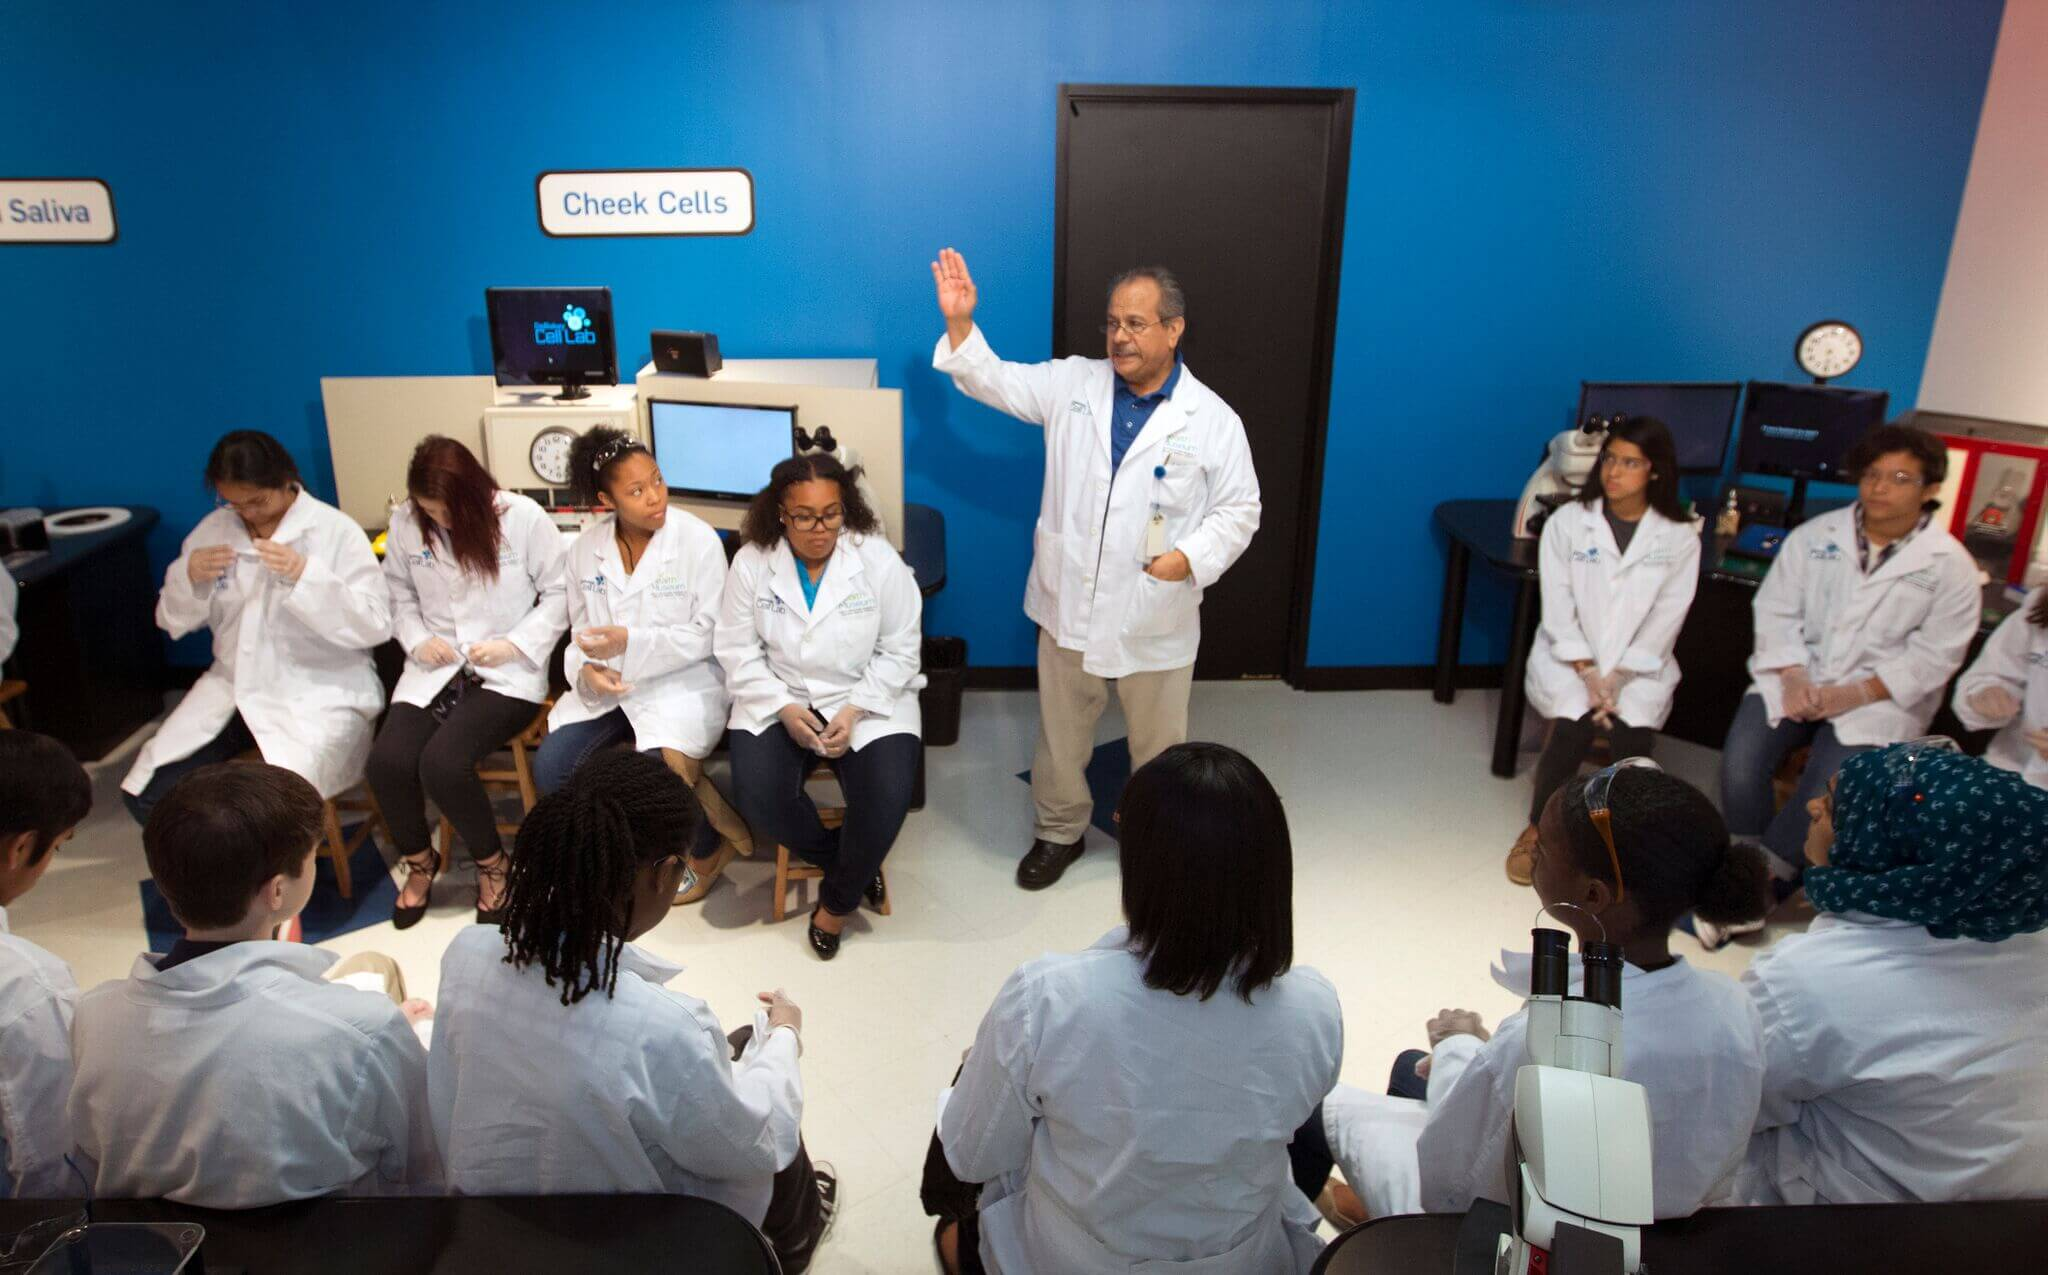 Gonzalo Perez, a DeBakey Cell Lab educator at the John P. McGovern Museum of Health and Medical Science, instructs students with the Faces of Innovation: Global Teen Medical Summit, how to perform the laboratory experiments.